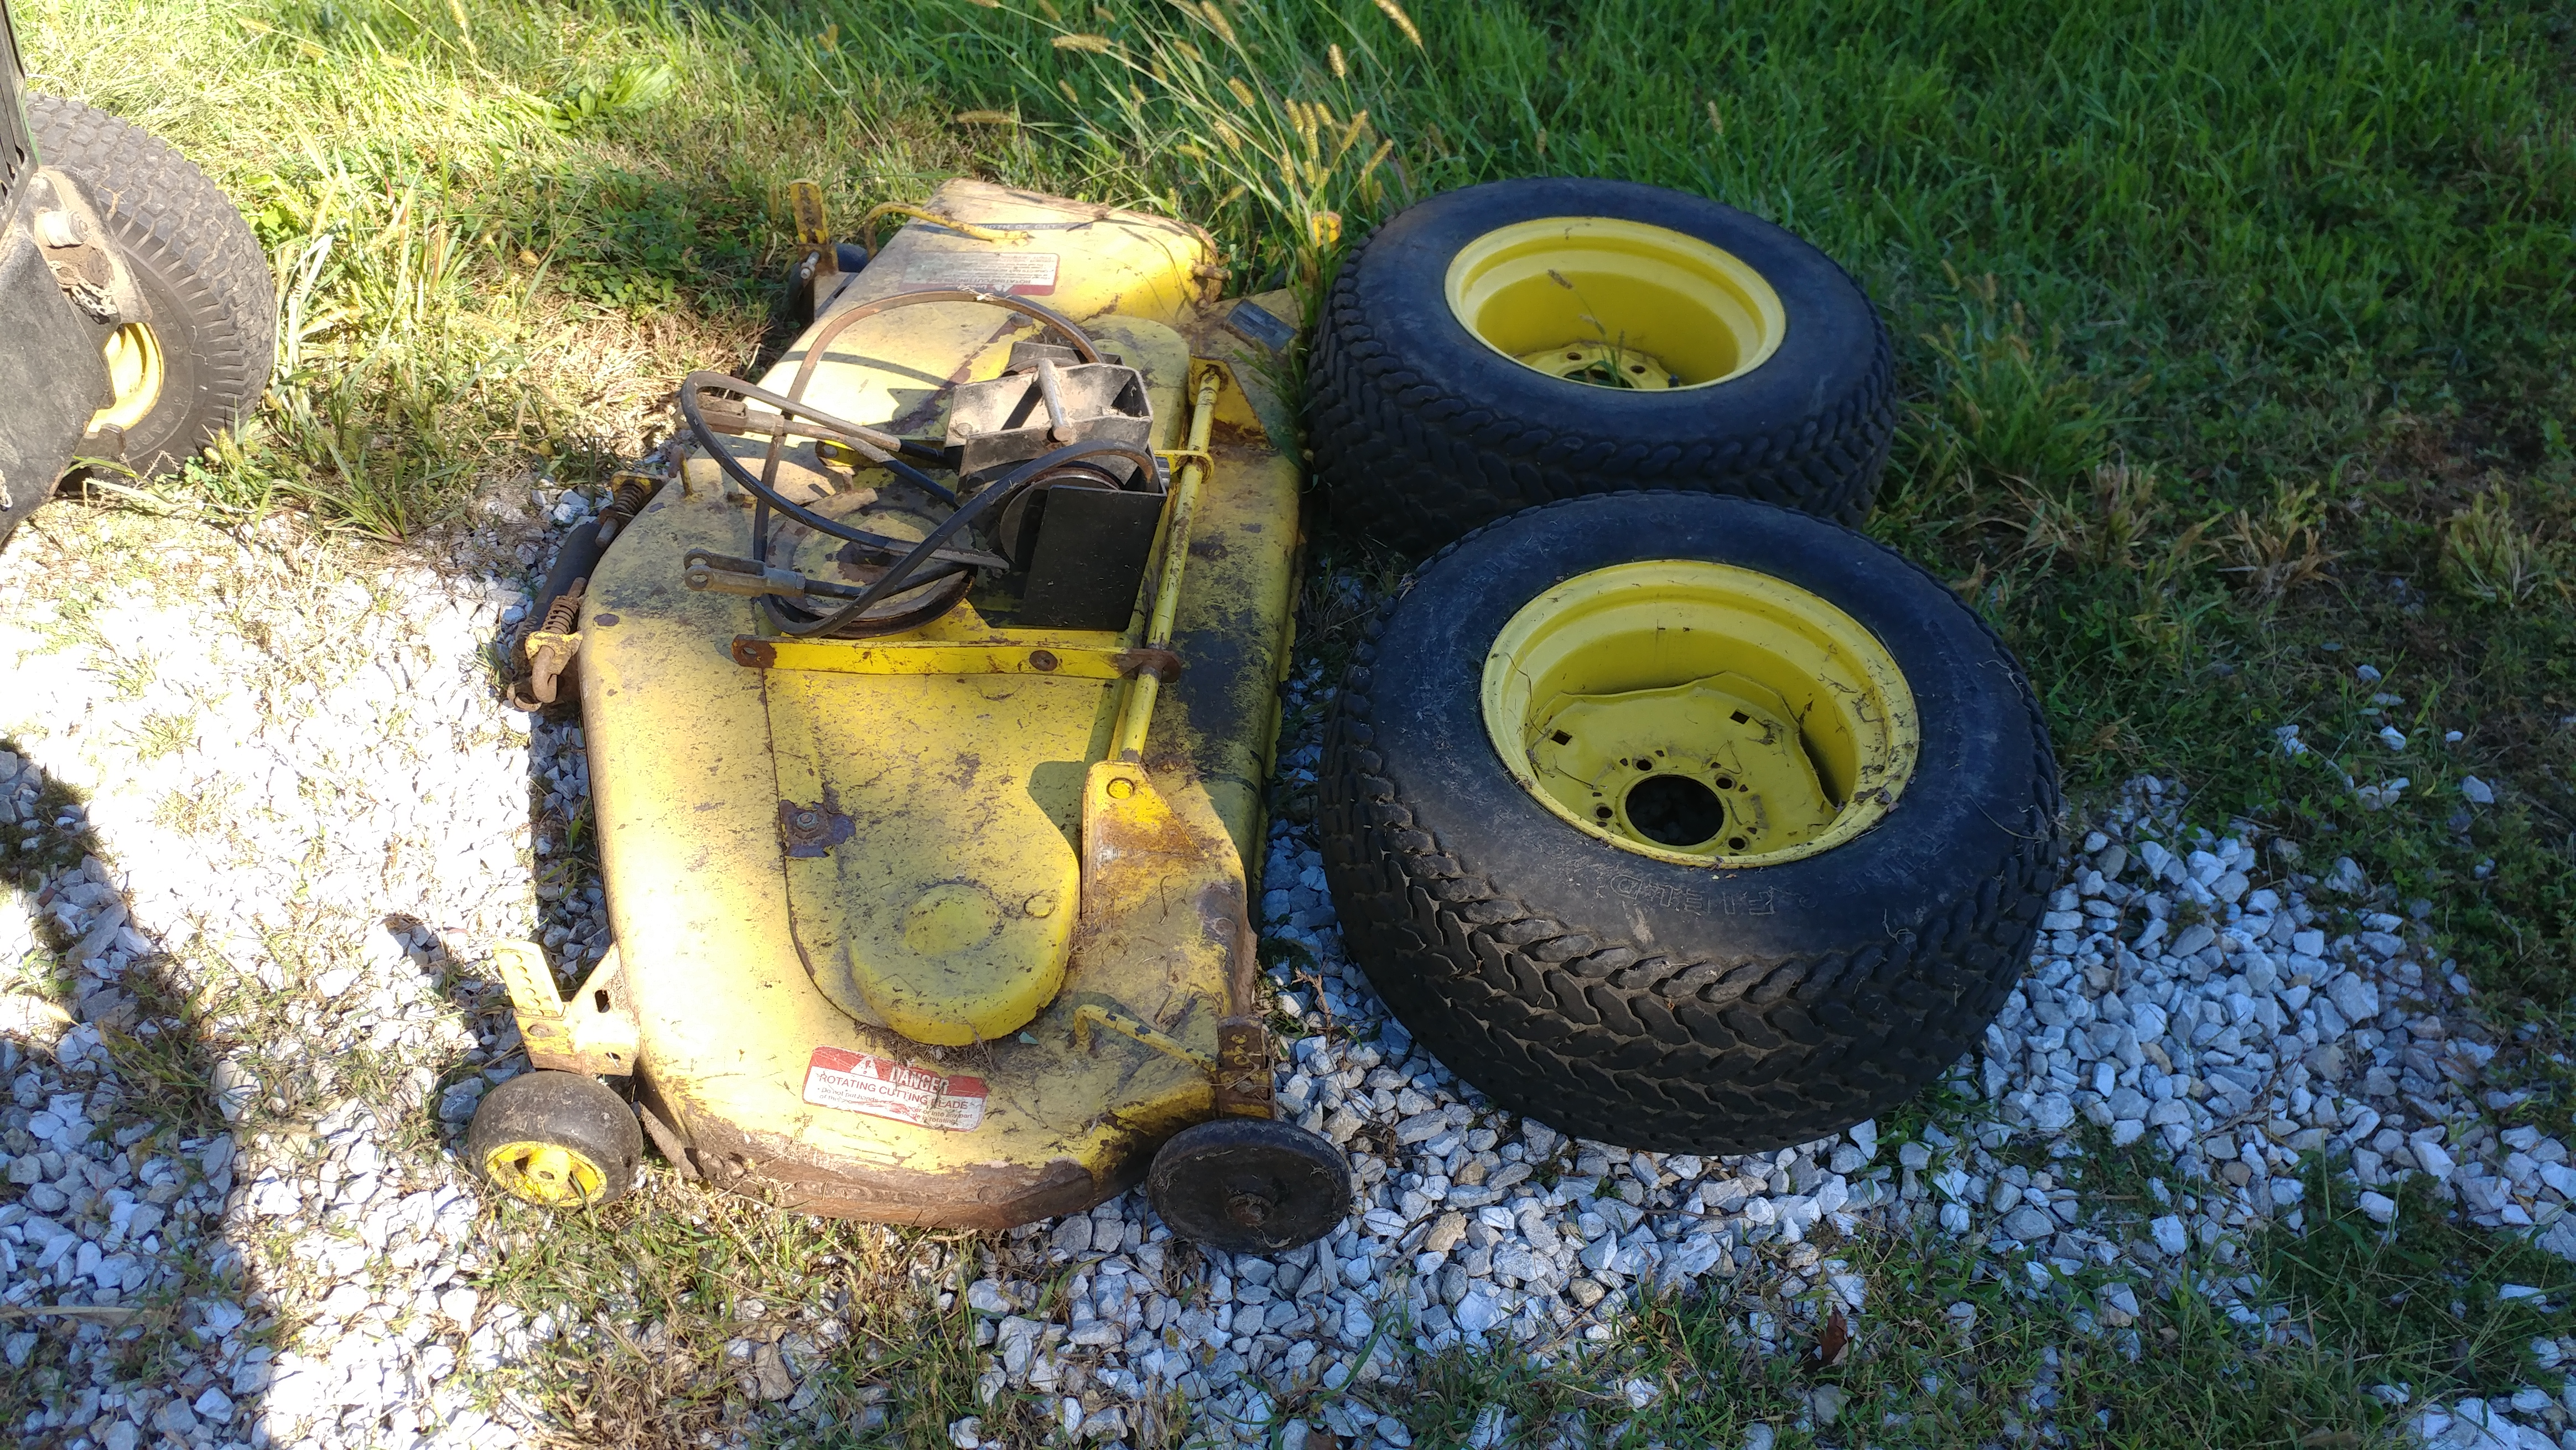 Click image for larger version.  Name:DECK TIRES2.jpg Views:5 Size:6.77 MB ID:655640